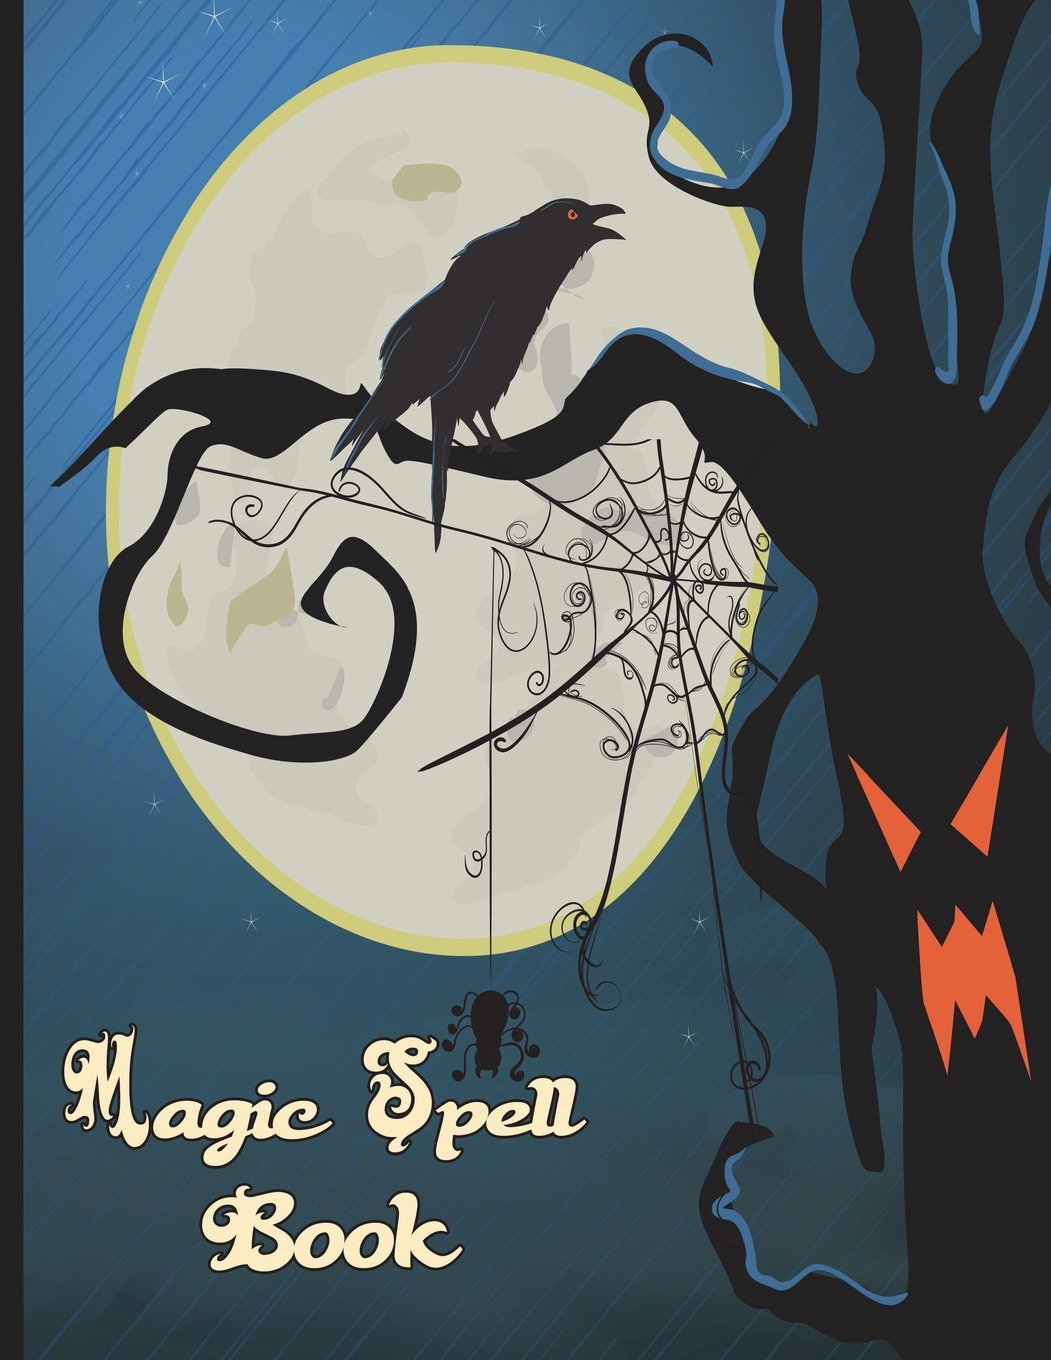 Magic Spell Book: Book of Shadows Grimoire 90 Blank Attractive Spells Records Paperback Notebook Journal 8.5 X 11 Magic Gift Spell Book Spooky Tree Spider Web Full Moon Cover pdf epub